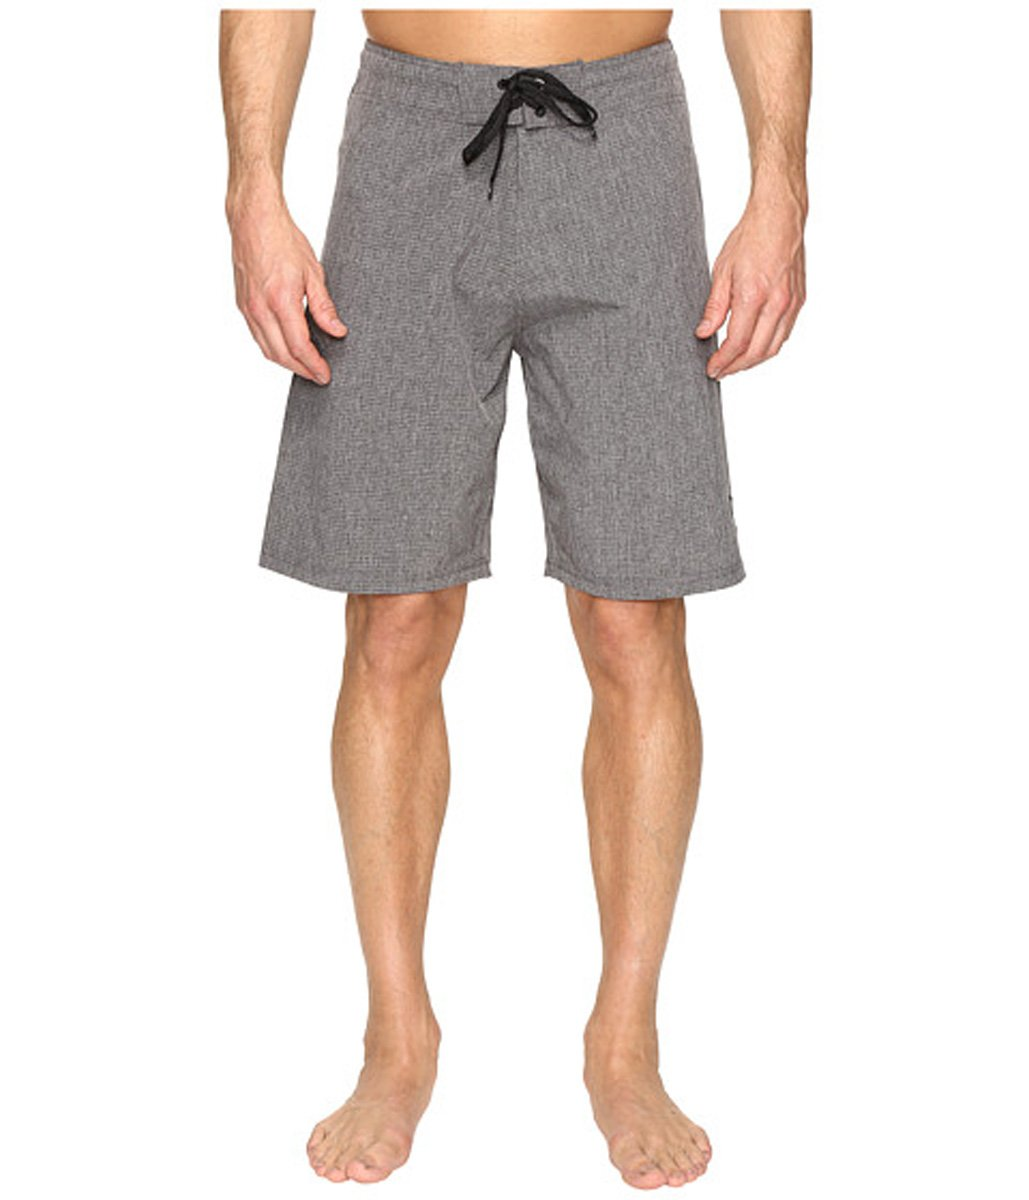 Body Glove Mens Vapor Trimming Boardshort